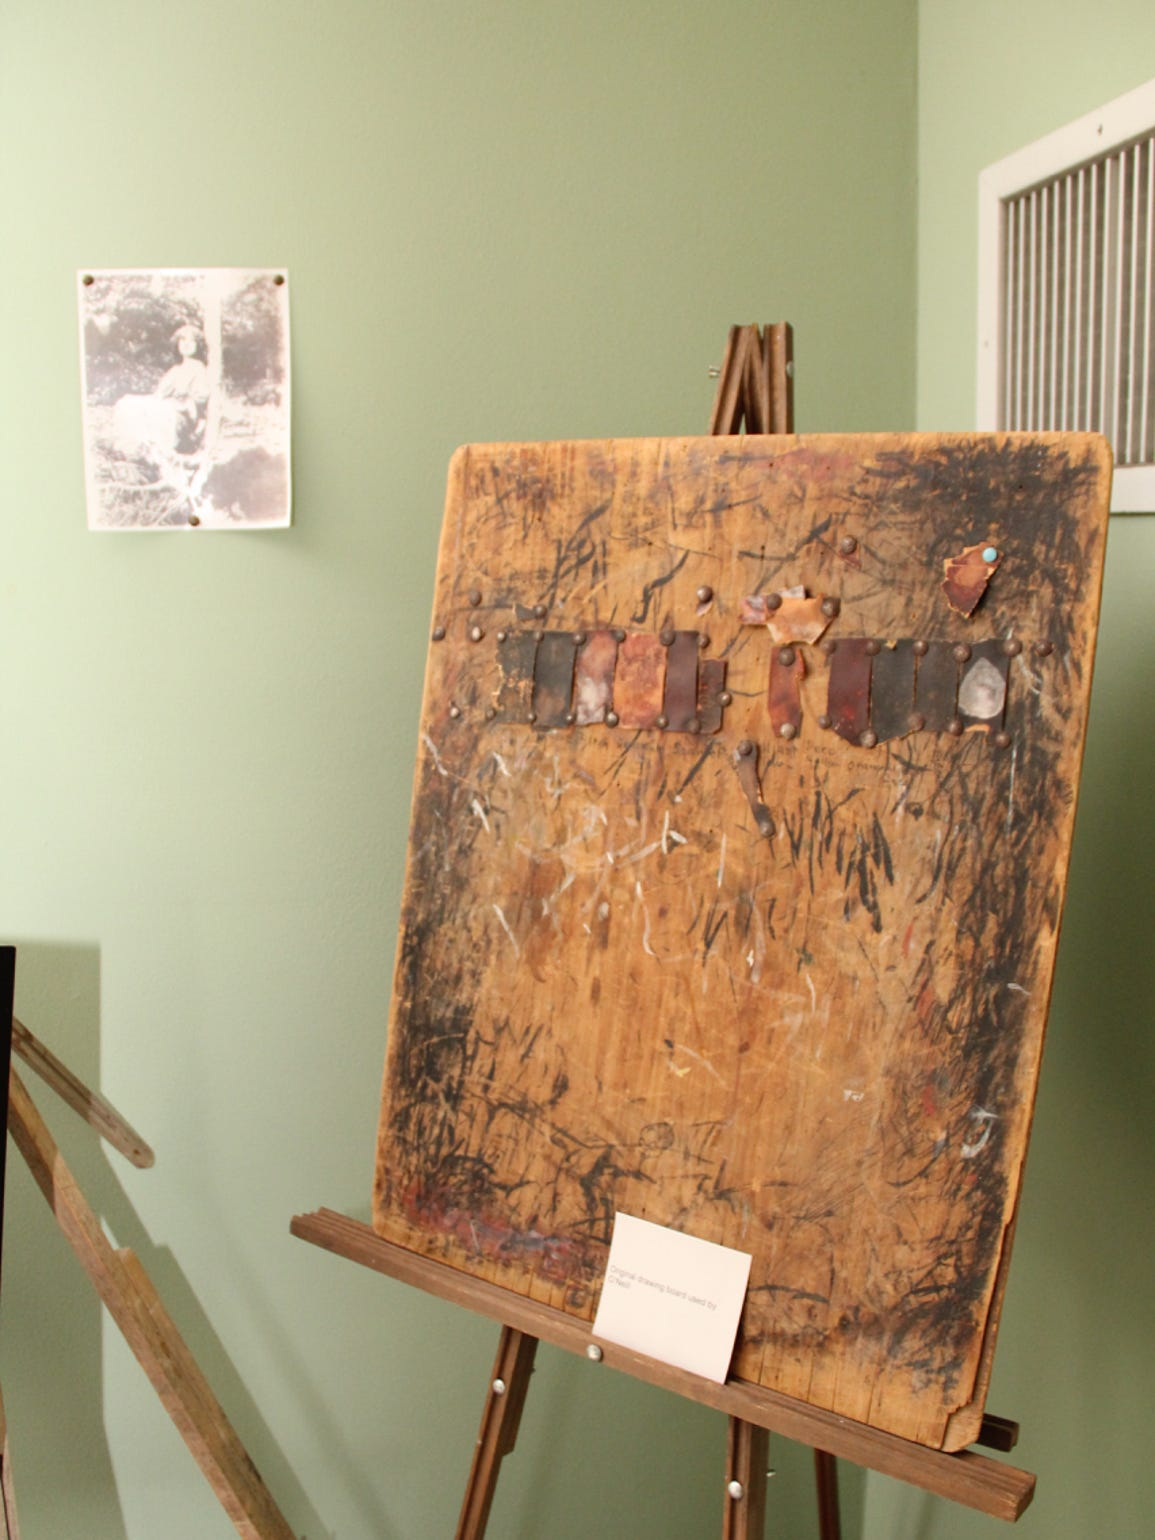 Artist Rose O'Neill's life is curated and celebrated at Bonniebrook, in Walnut Shade. This photo shows one of the artist's easels.